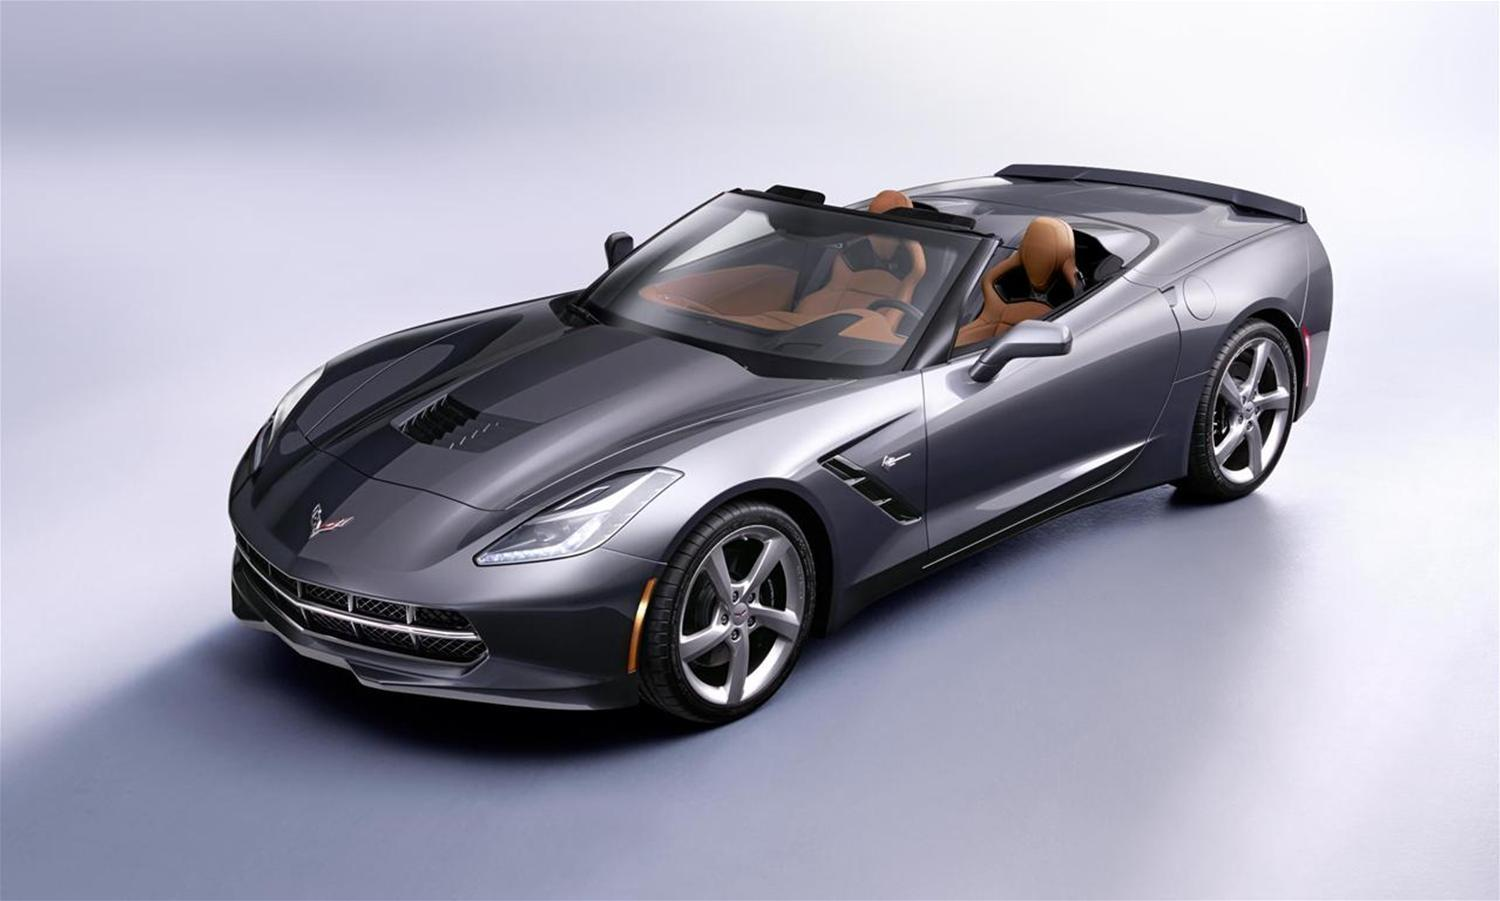 2014 Chevy Corvette UK Prices Hinted